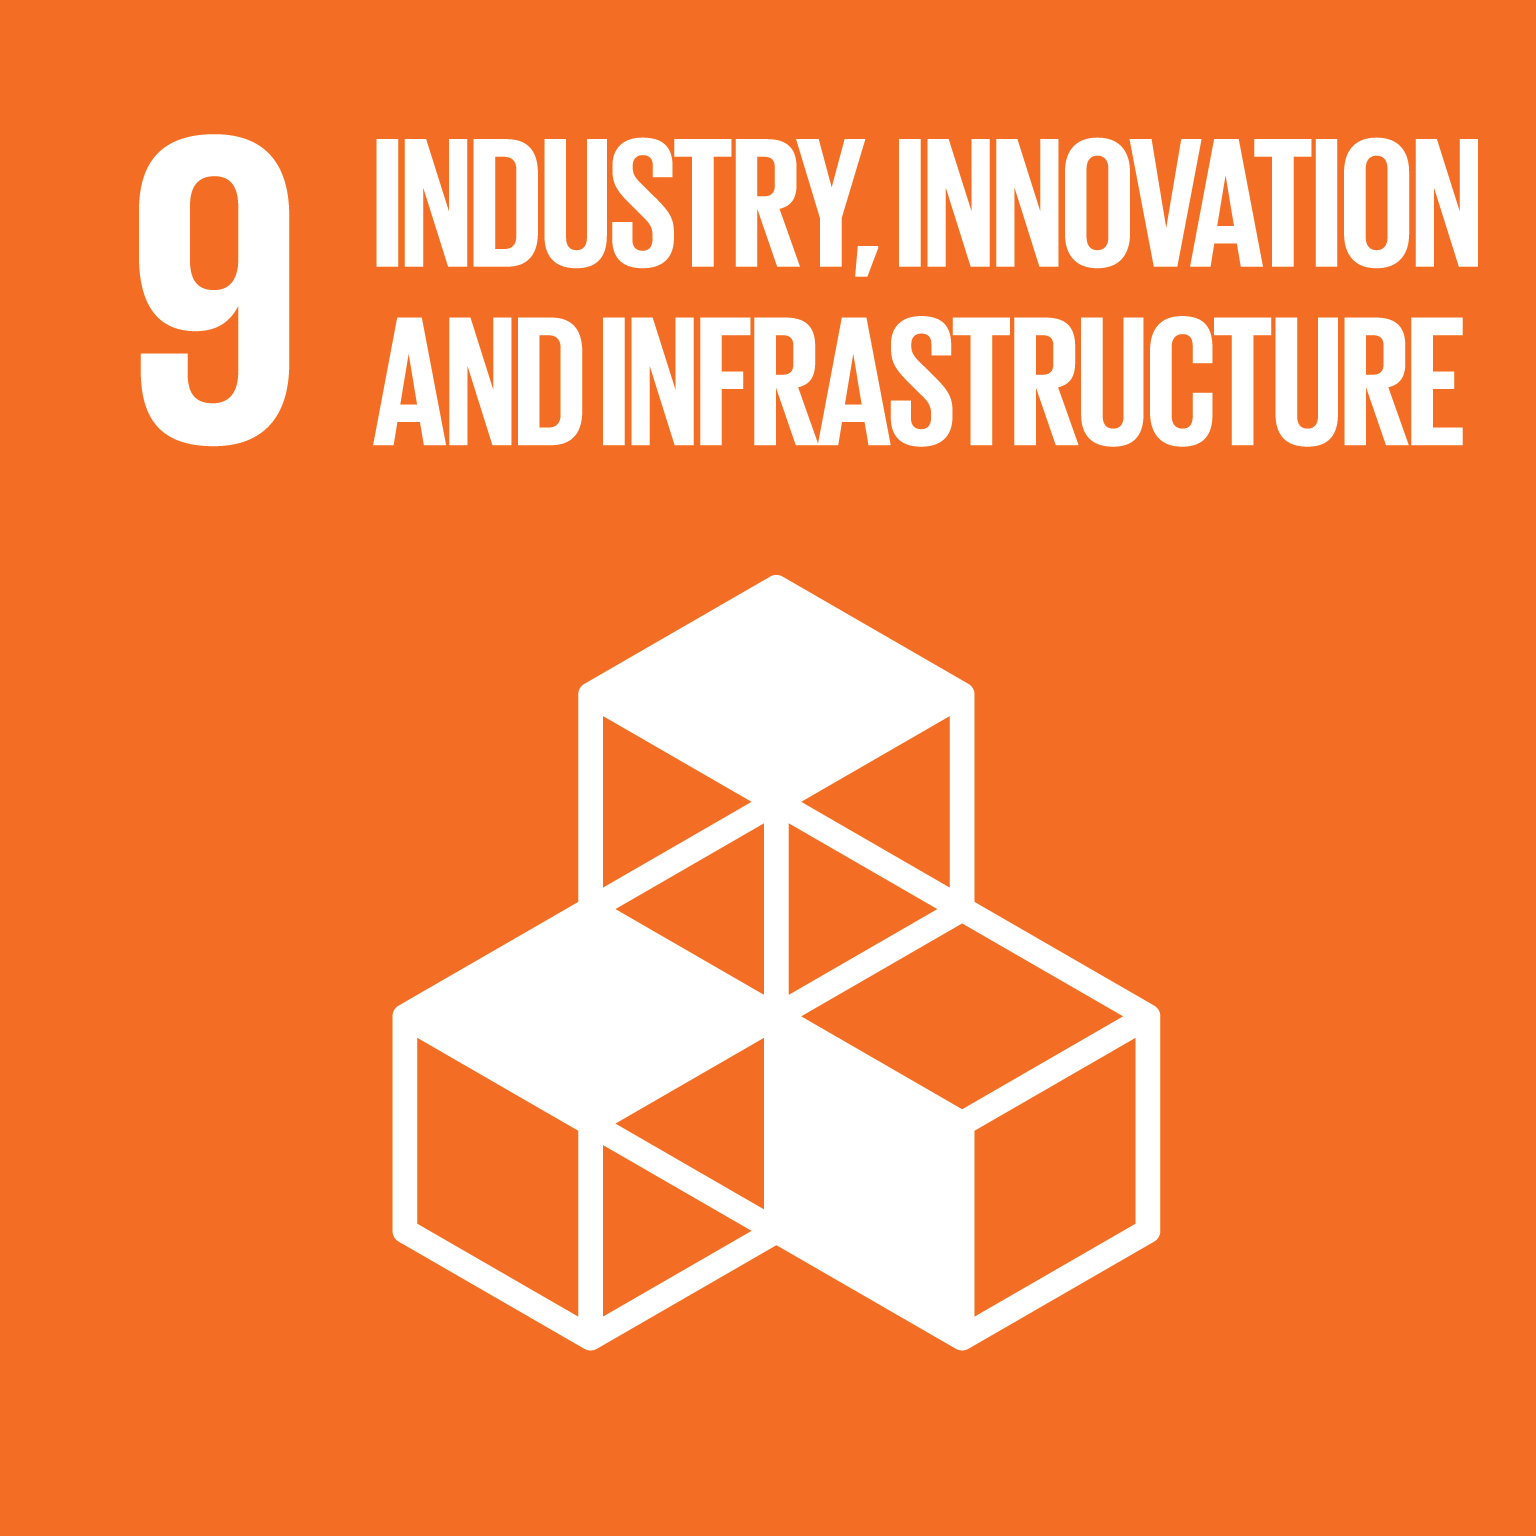 SDG Goal #9 Industry, Innovation, and Infrastructure